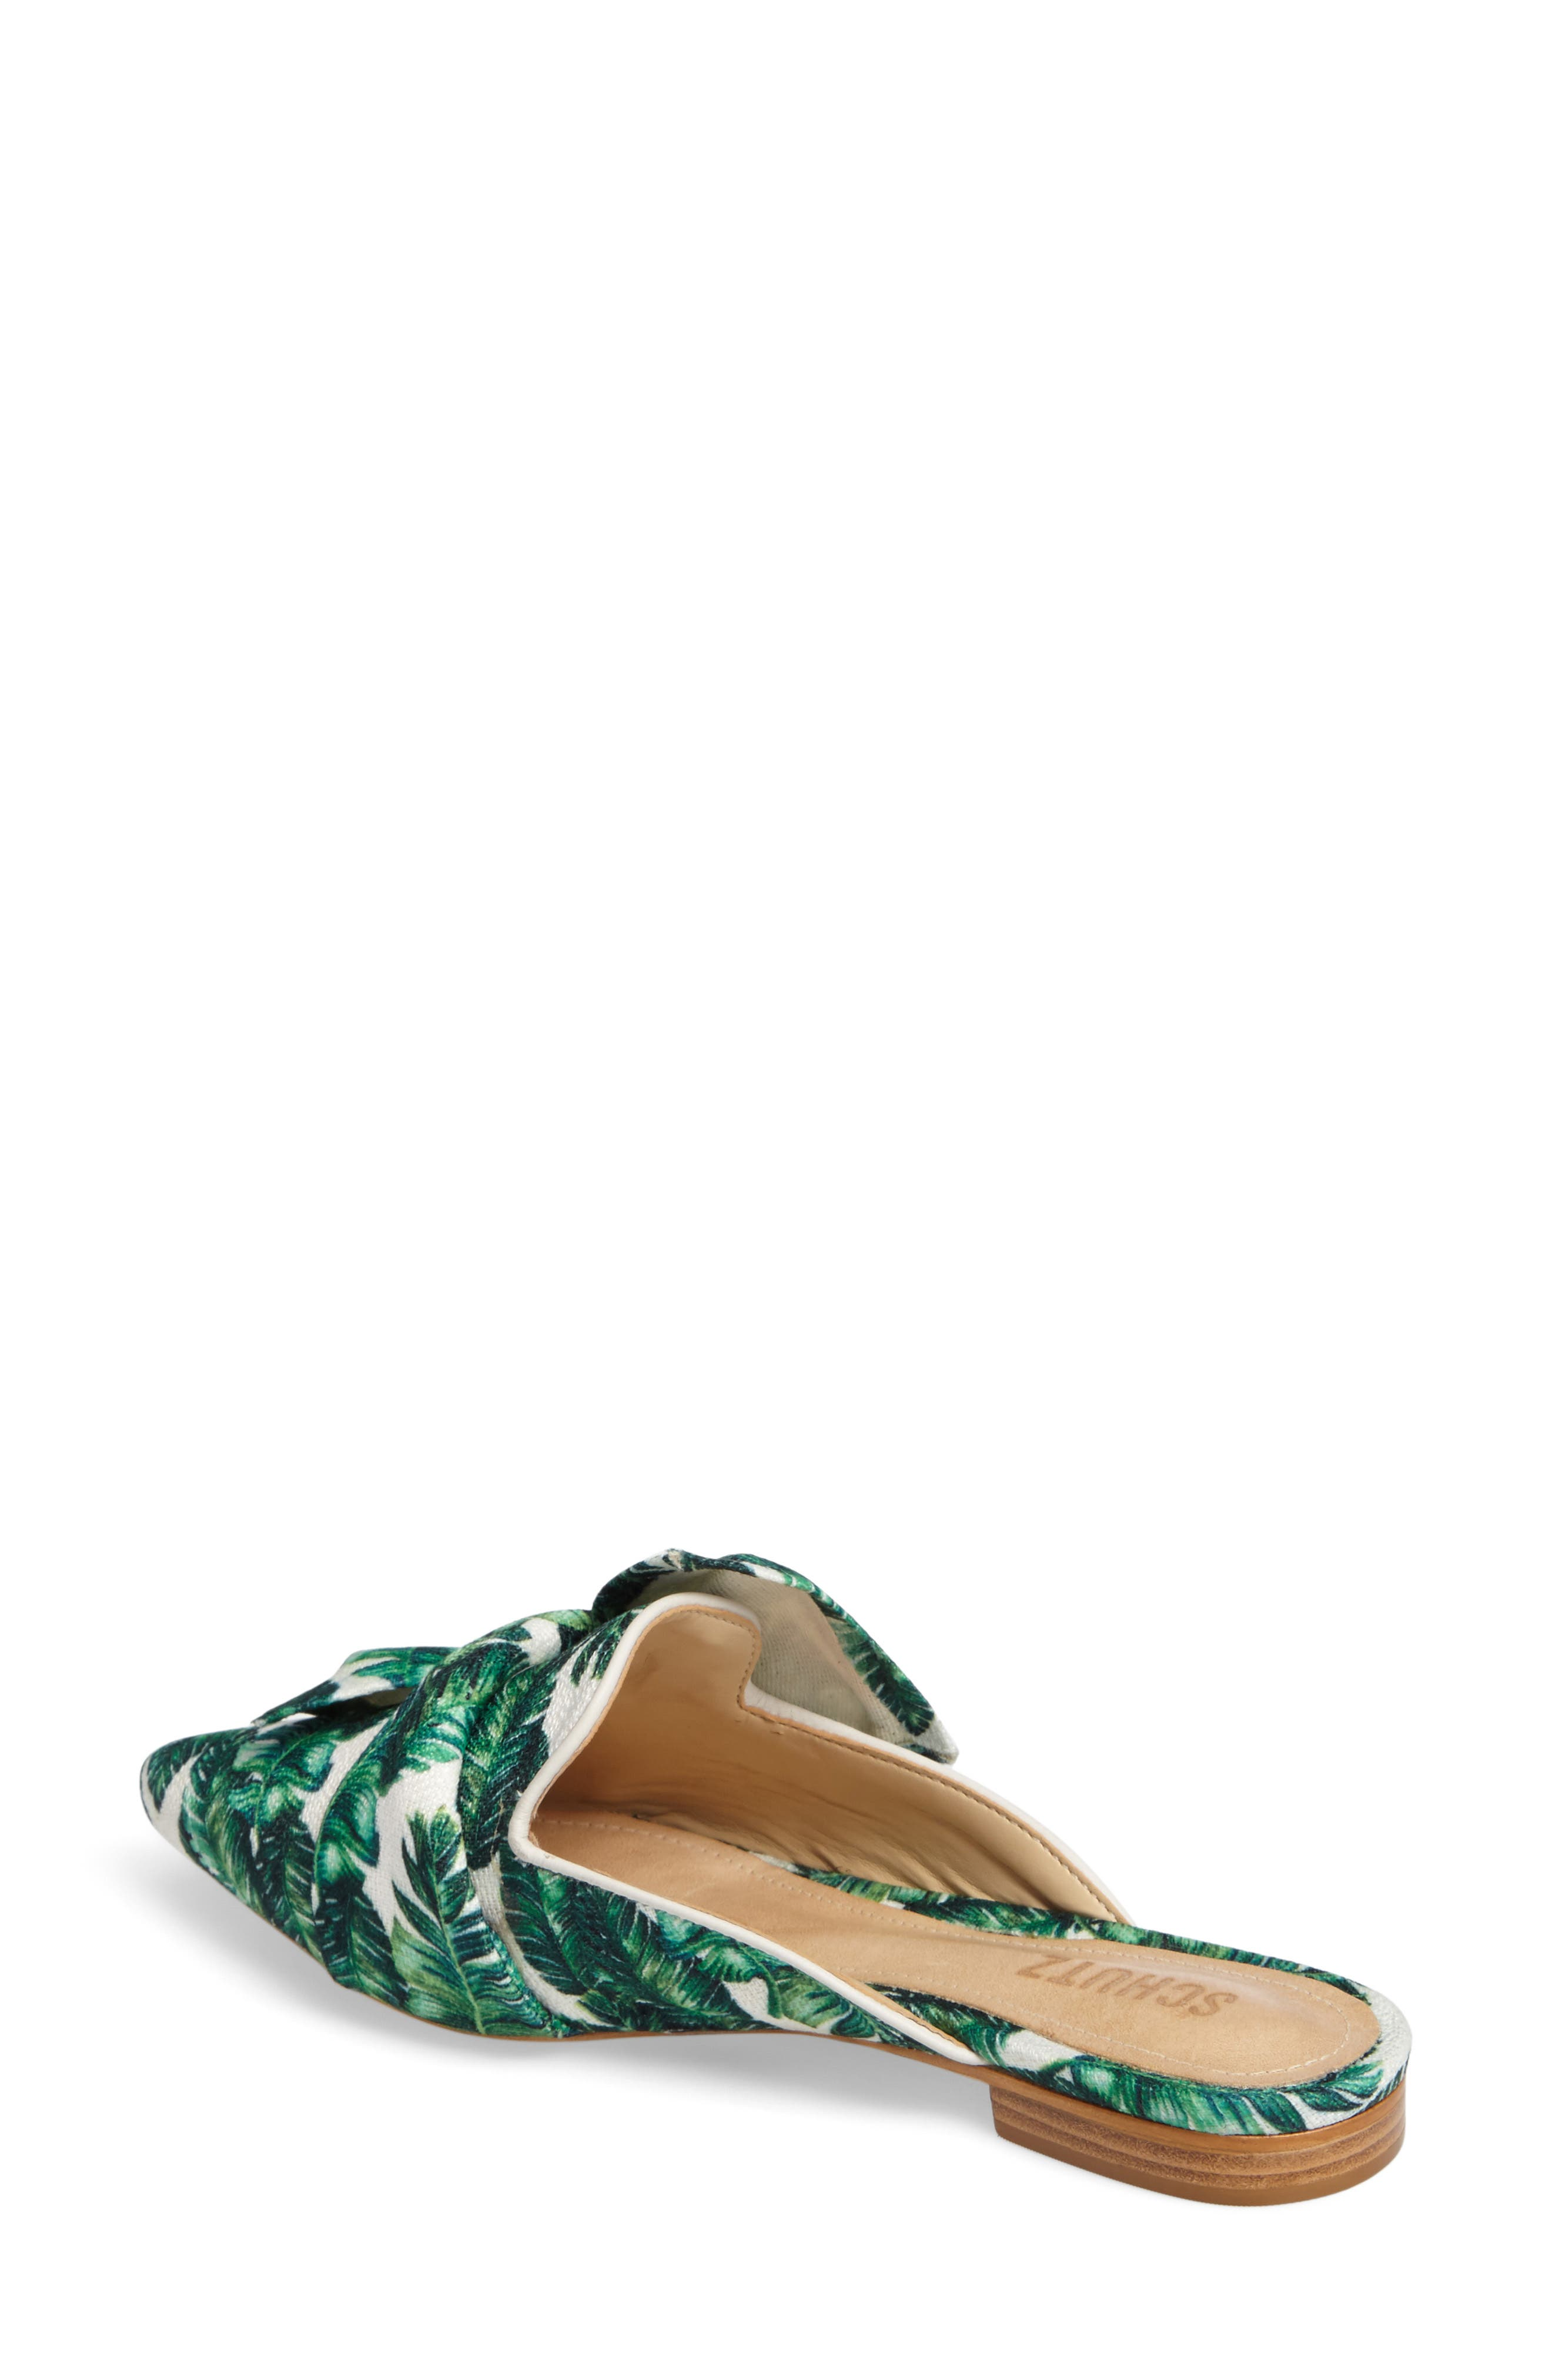 D'Ana Knotted Loafer Mule,                             Alternate thumbnail 2, color,                             White